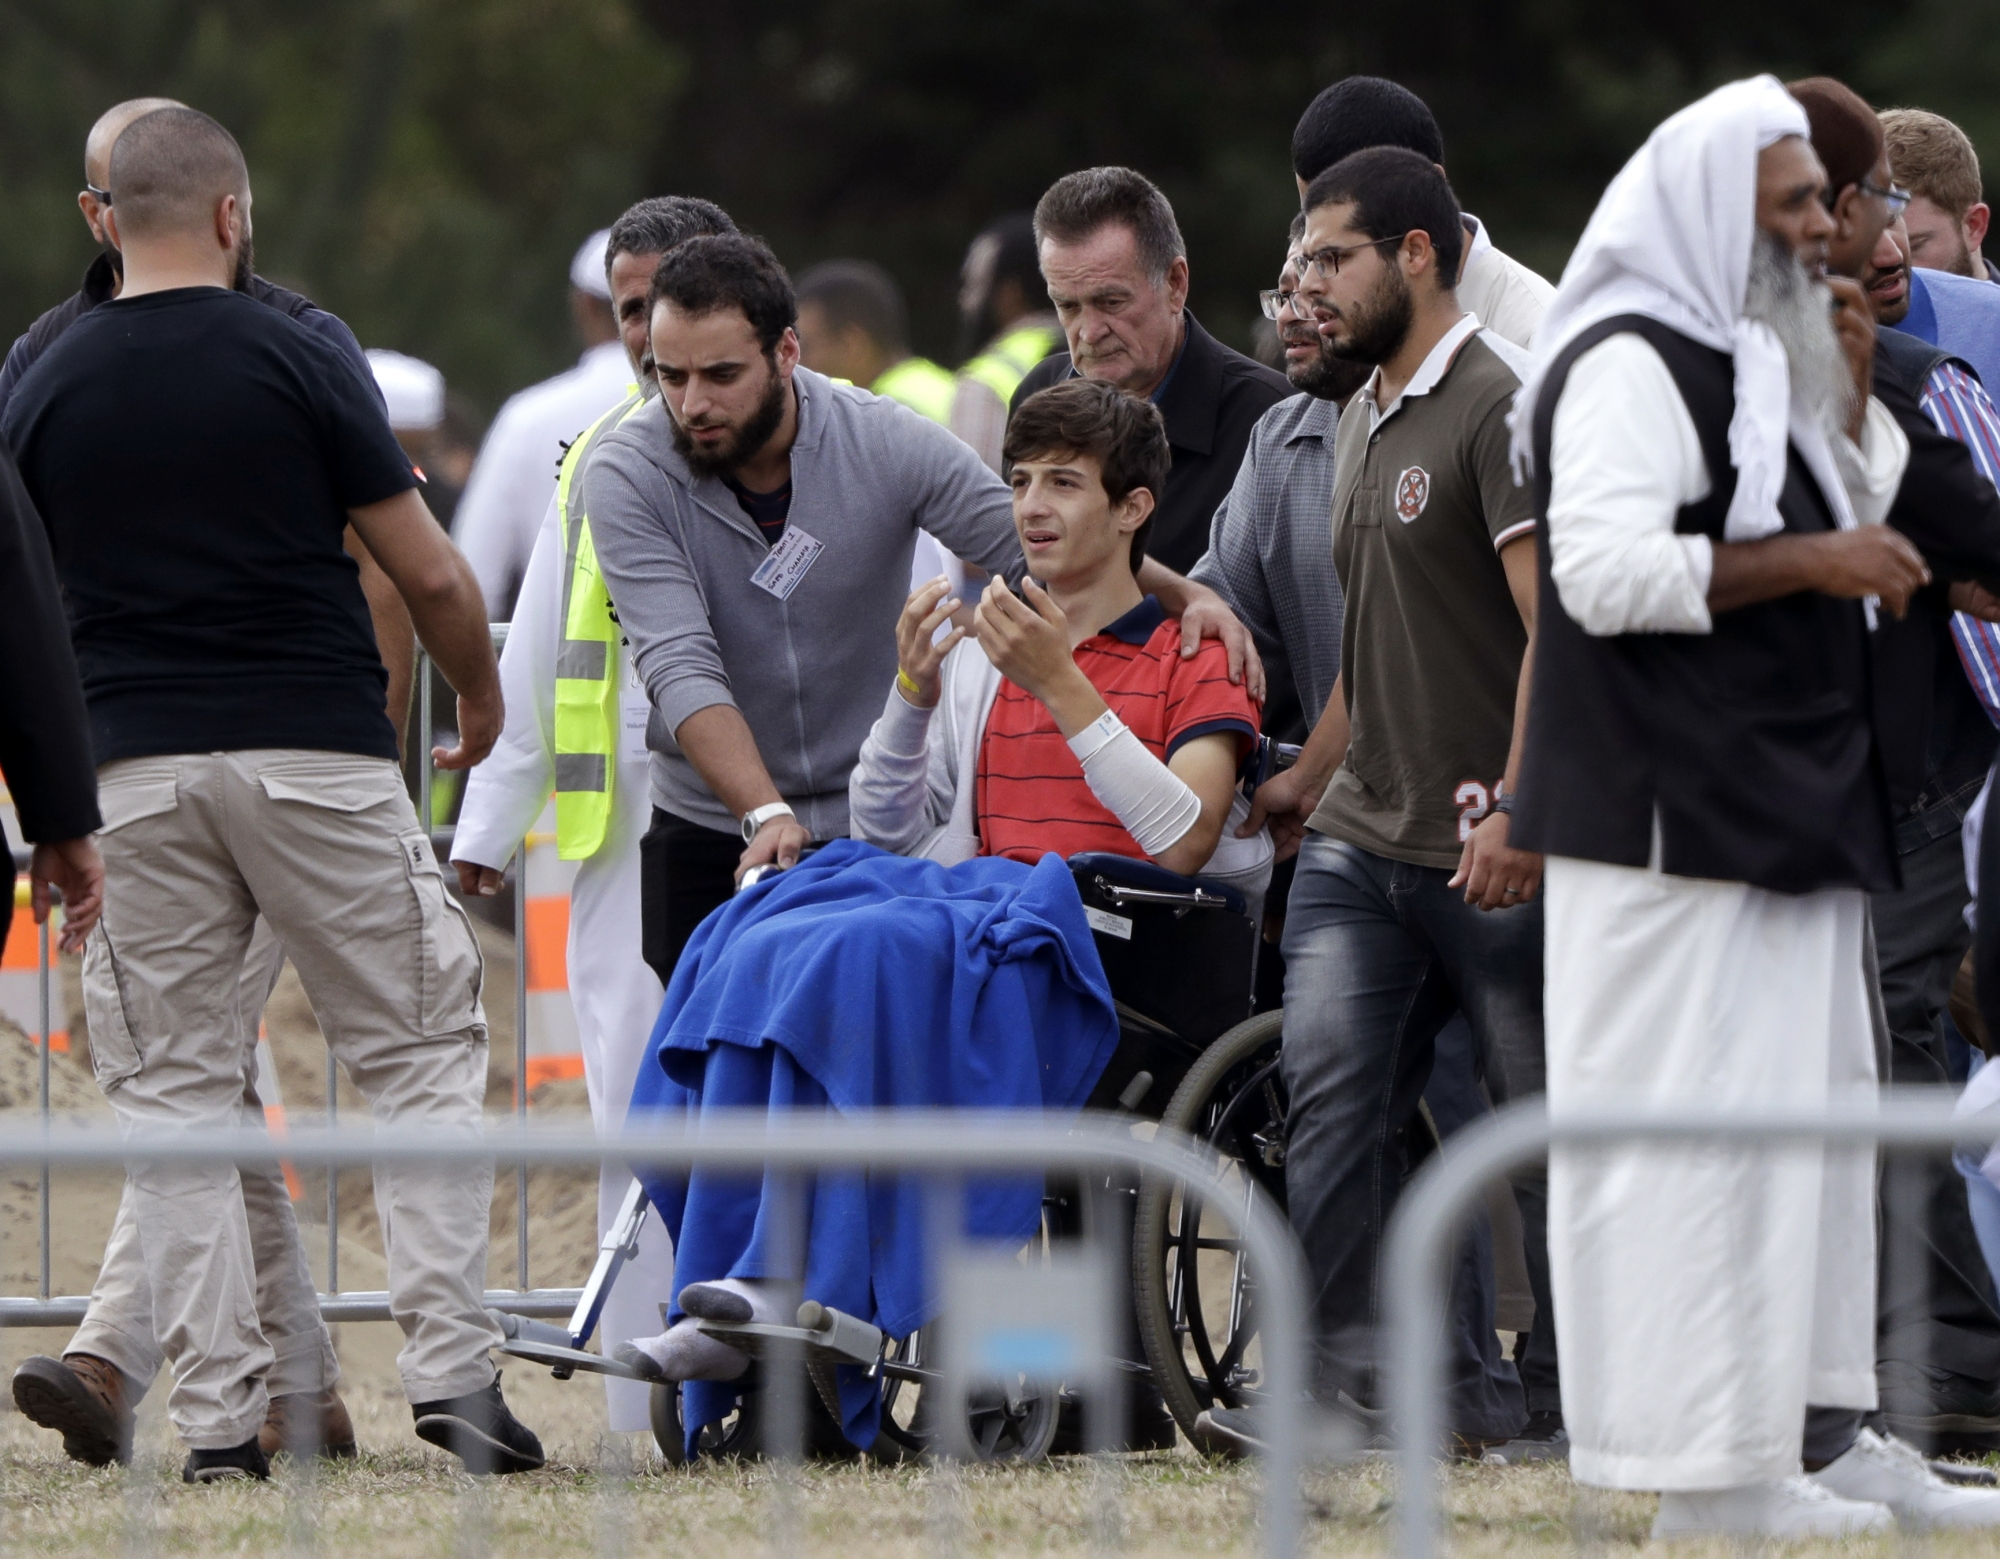 New Zealand Shooting: New Zealand Police: Mosque Gunman Had Planned A 3rd Attack